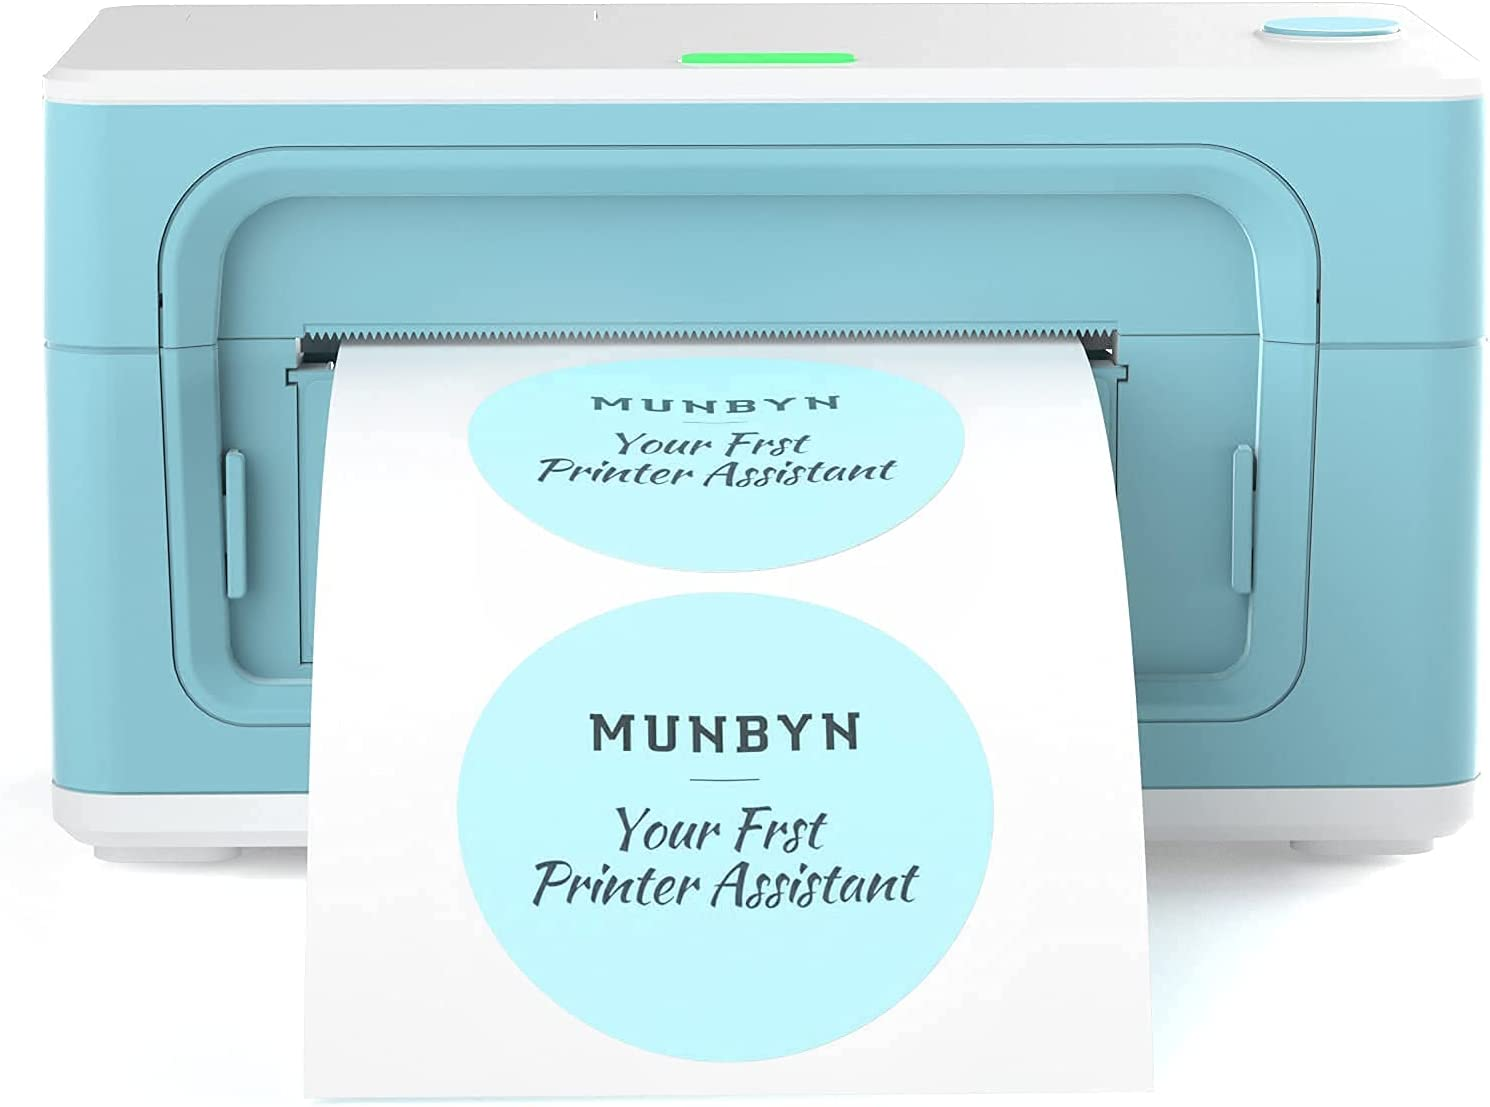 MUNBYN Thermal Label Printer, [Upgraded 2.0] 4×6 Direct Label Printer for Shipping Packages & Small Business, High-Speed 150mm/s, and Android Barcode Scanner Good Combination for Warehouse, Inventory